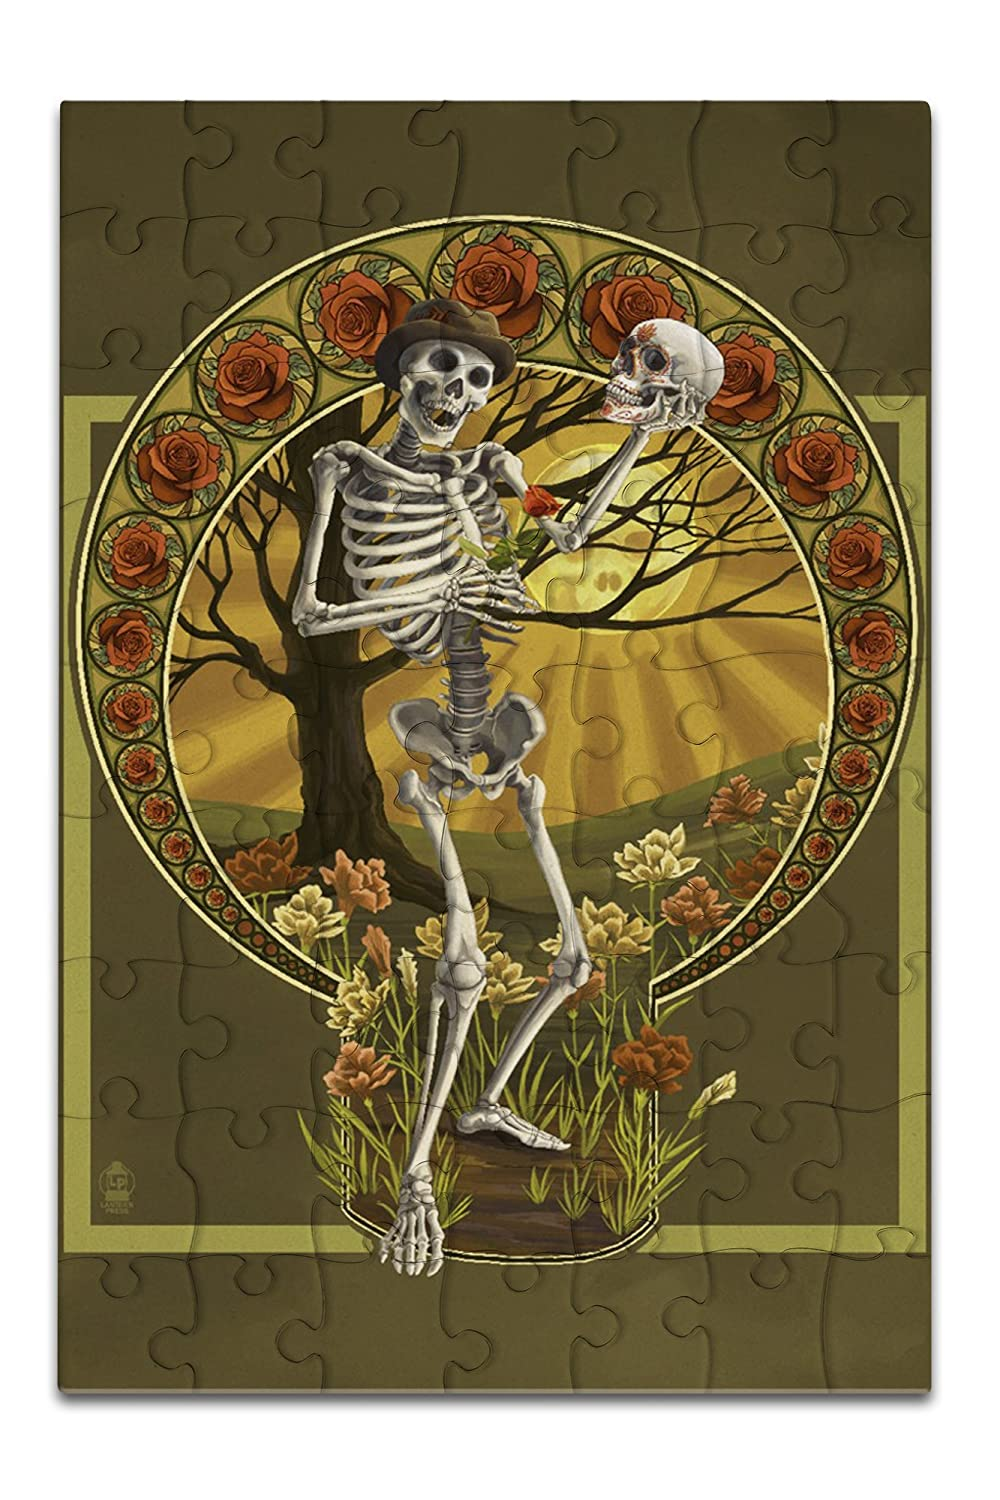 Day of the Dead - Skeleton Holding Sugar Skull (8x12 Premium Acrylic Puzzle, 63 Pieces)